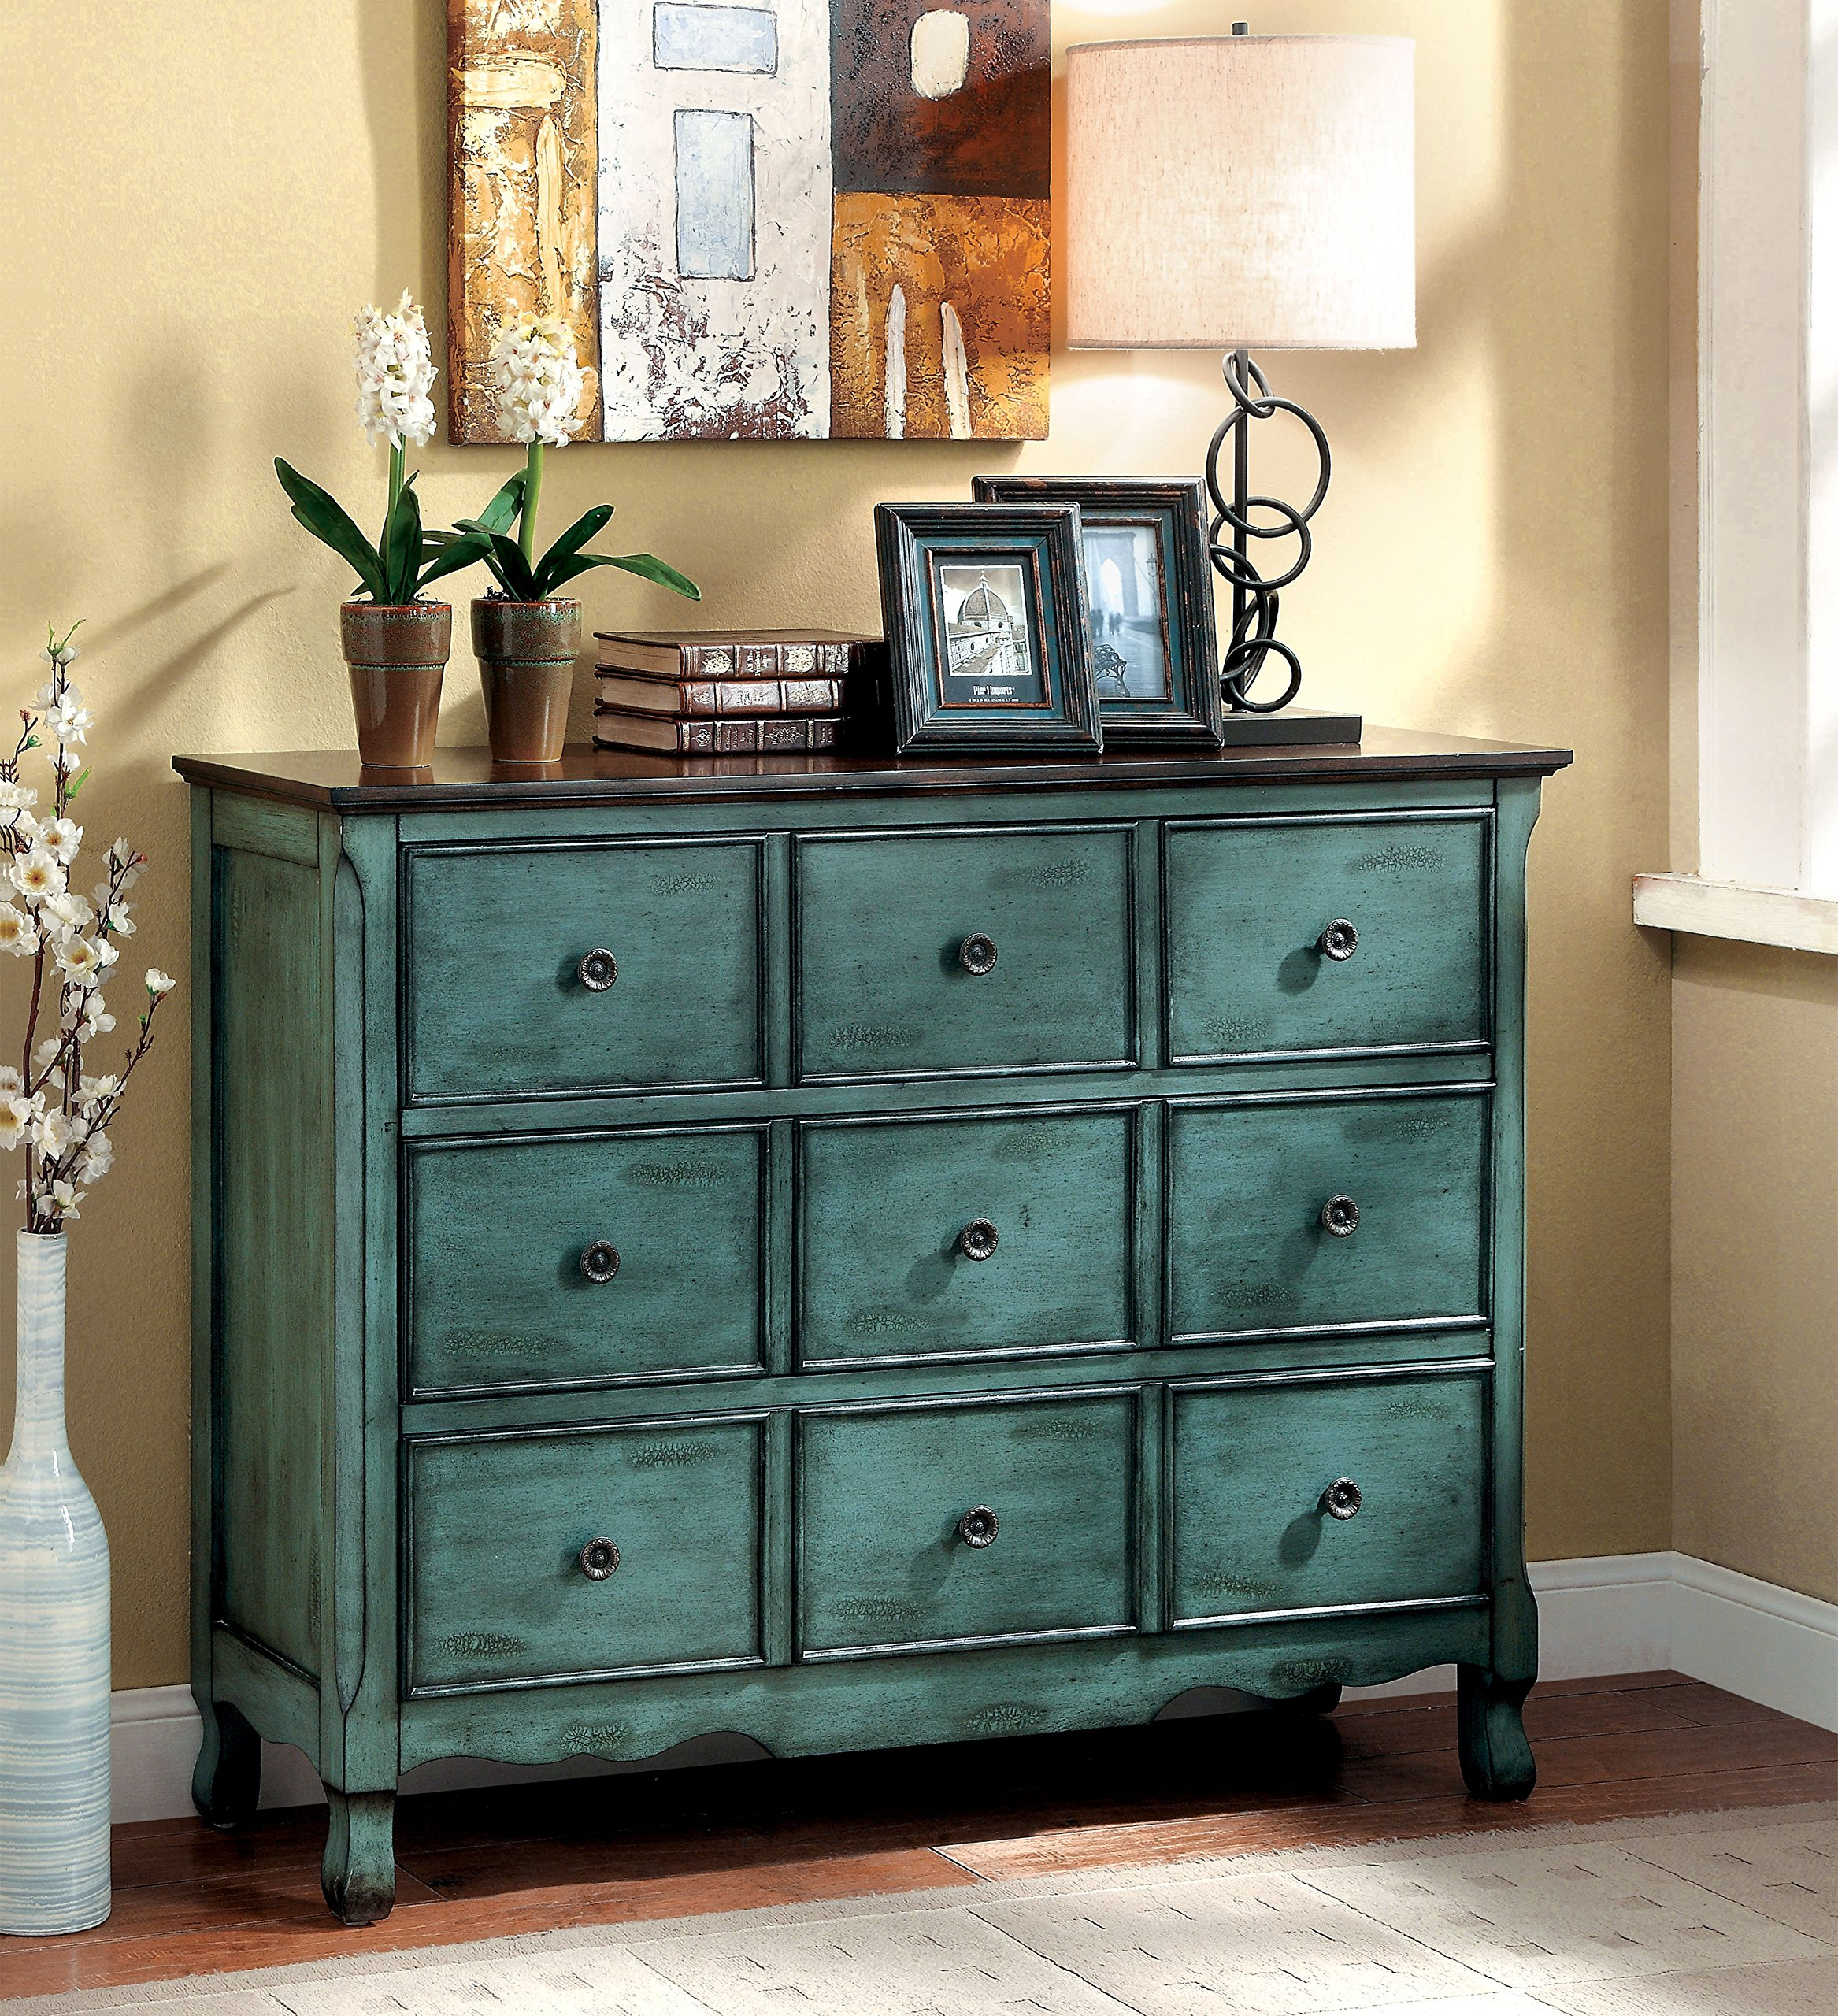 Furniture Of America Camina Vintage Style Storage Chest